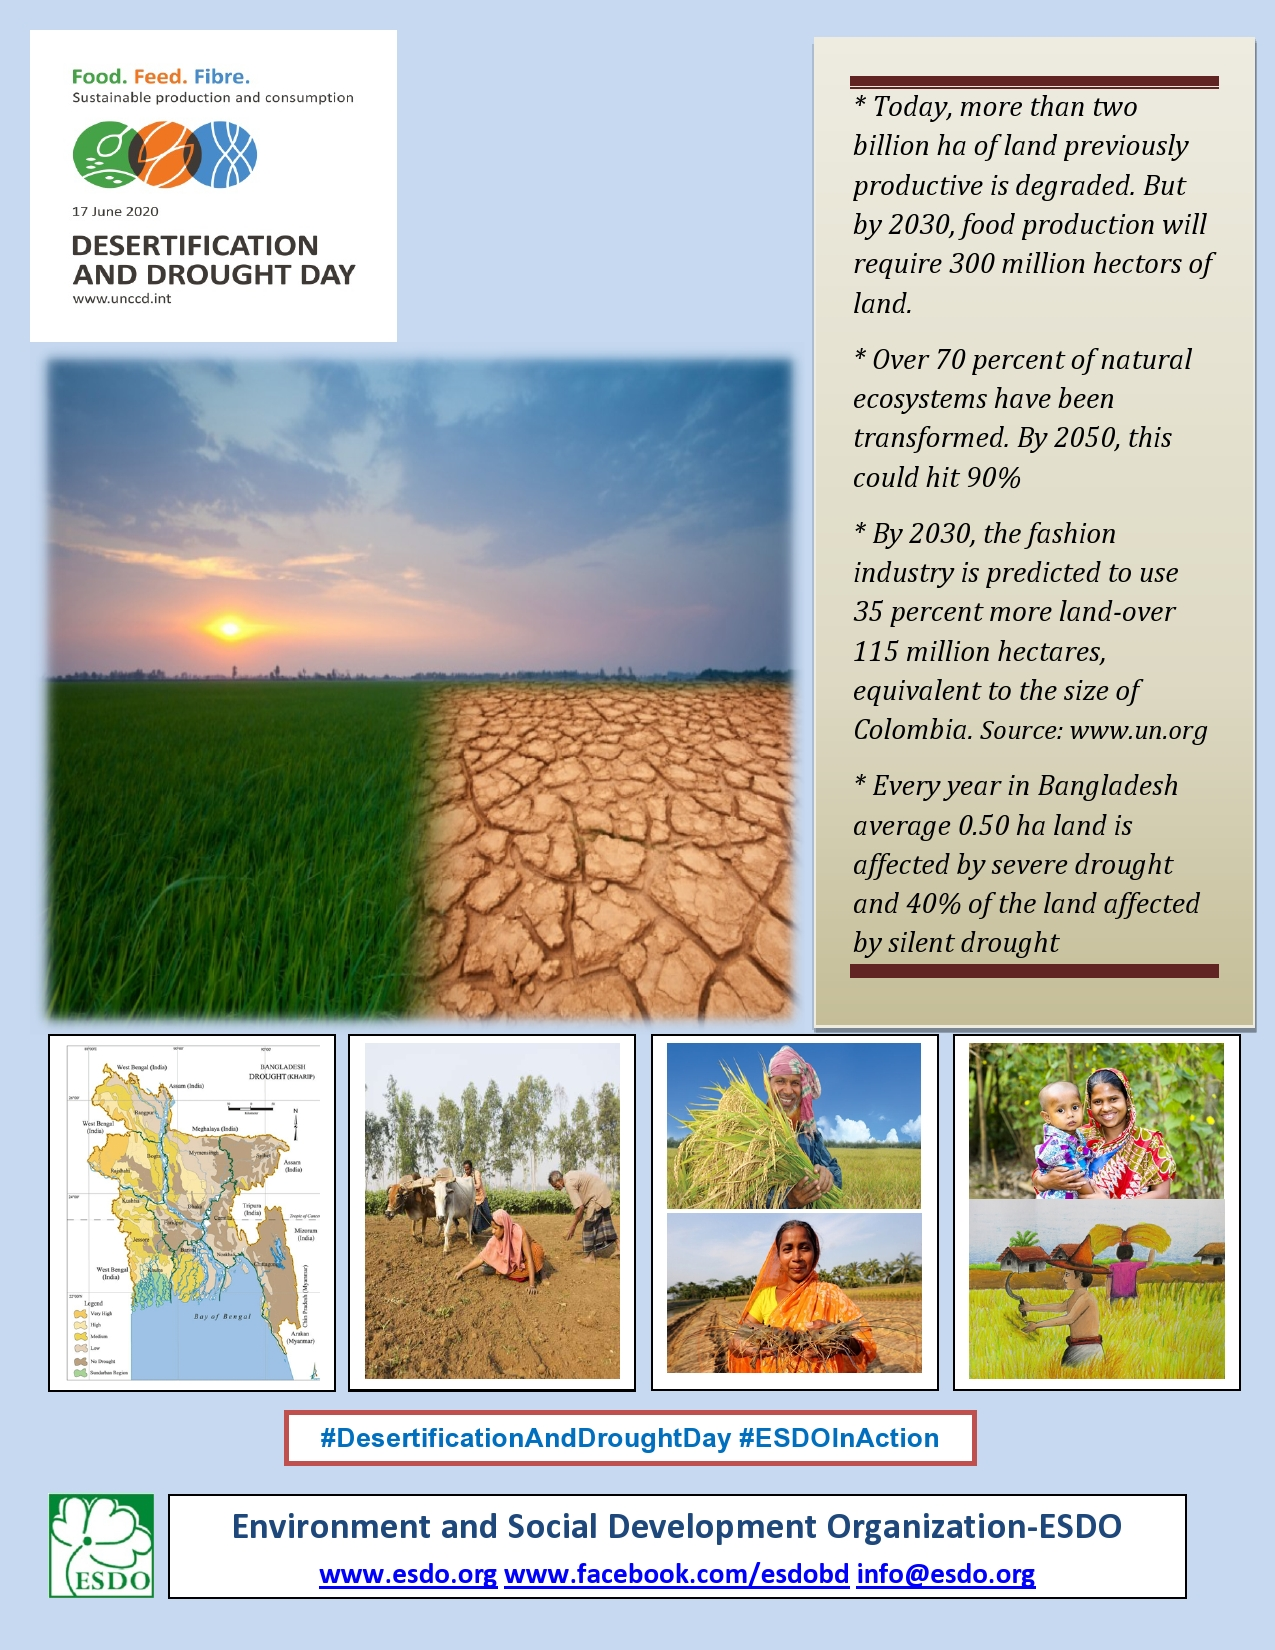 Poster-on-Des-Drought-Day-2020-ESDO